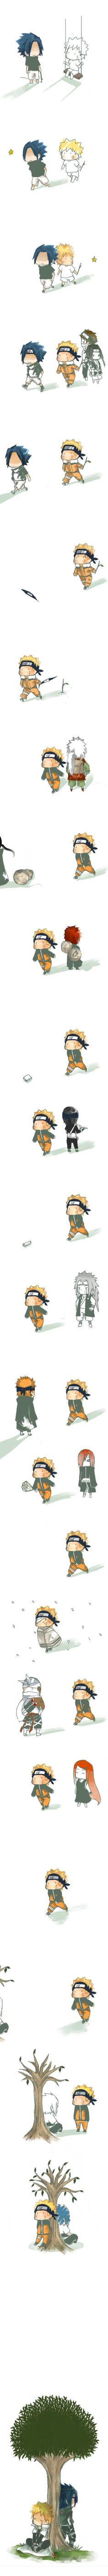 Heh. A seed he's planted on Naruto grew real deep.      (Don't be a pervert and think the other way.-.)